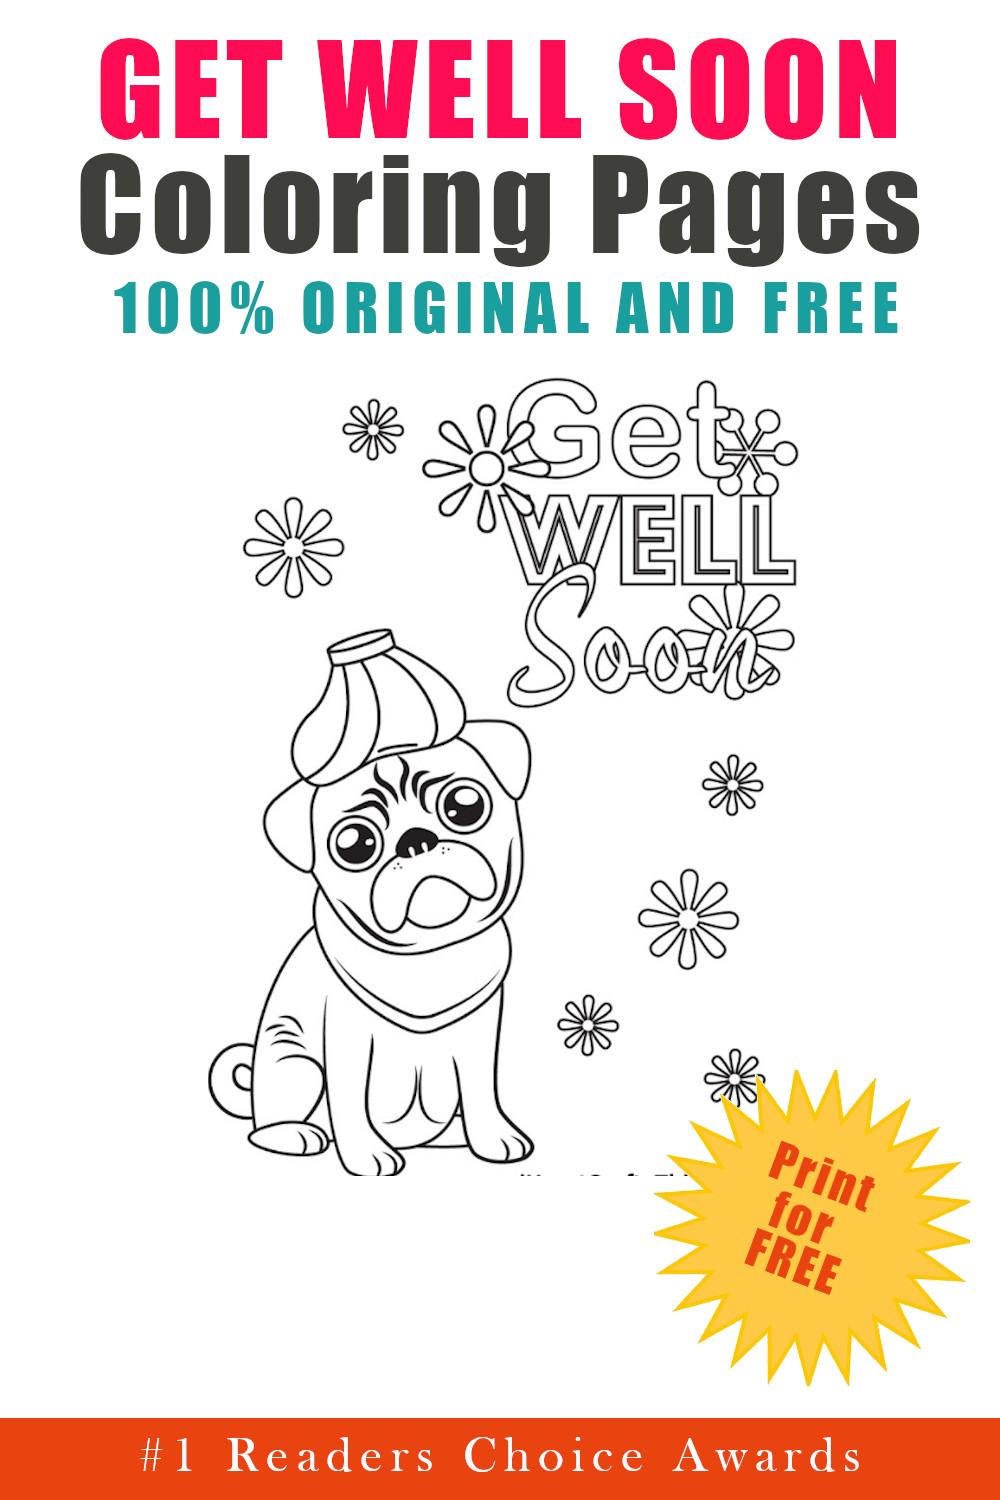 original and free get well soon coloring pages